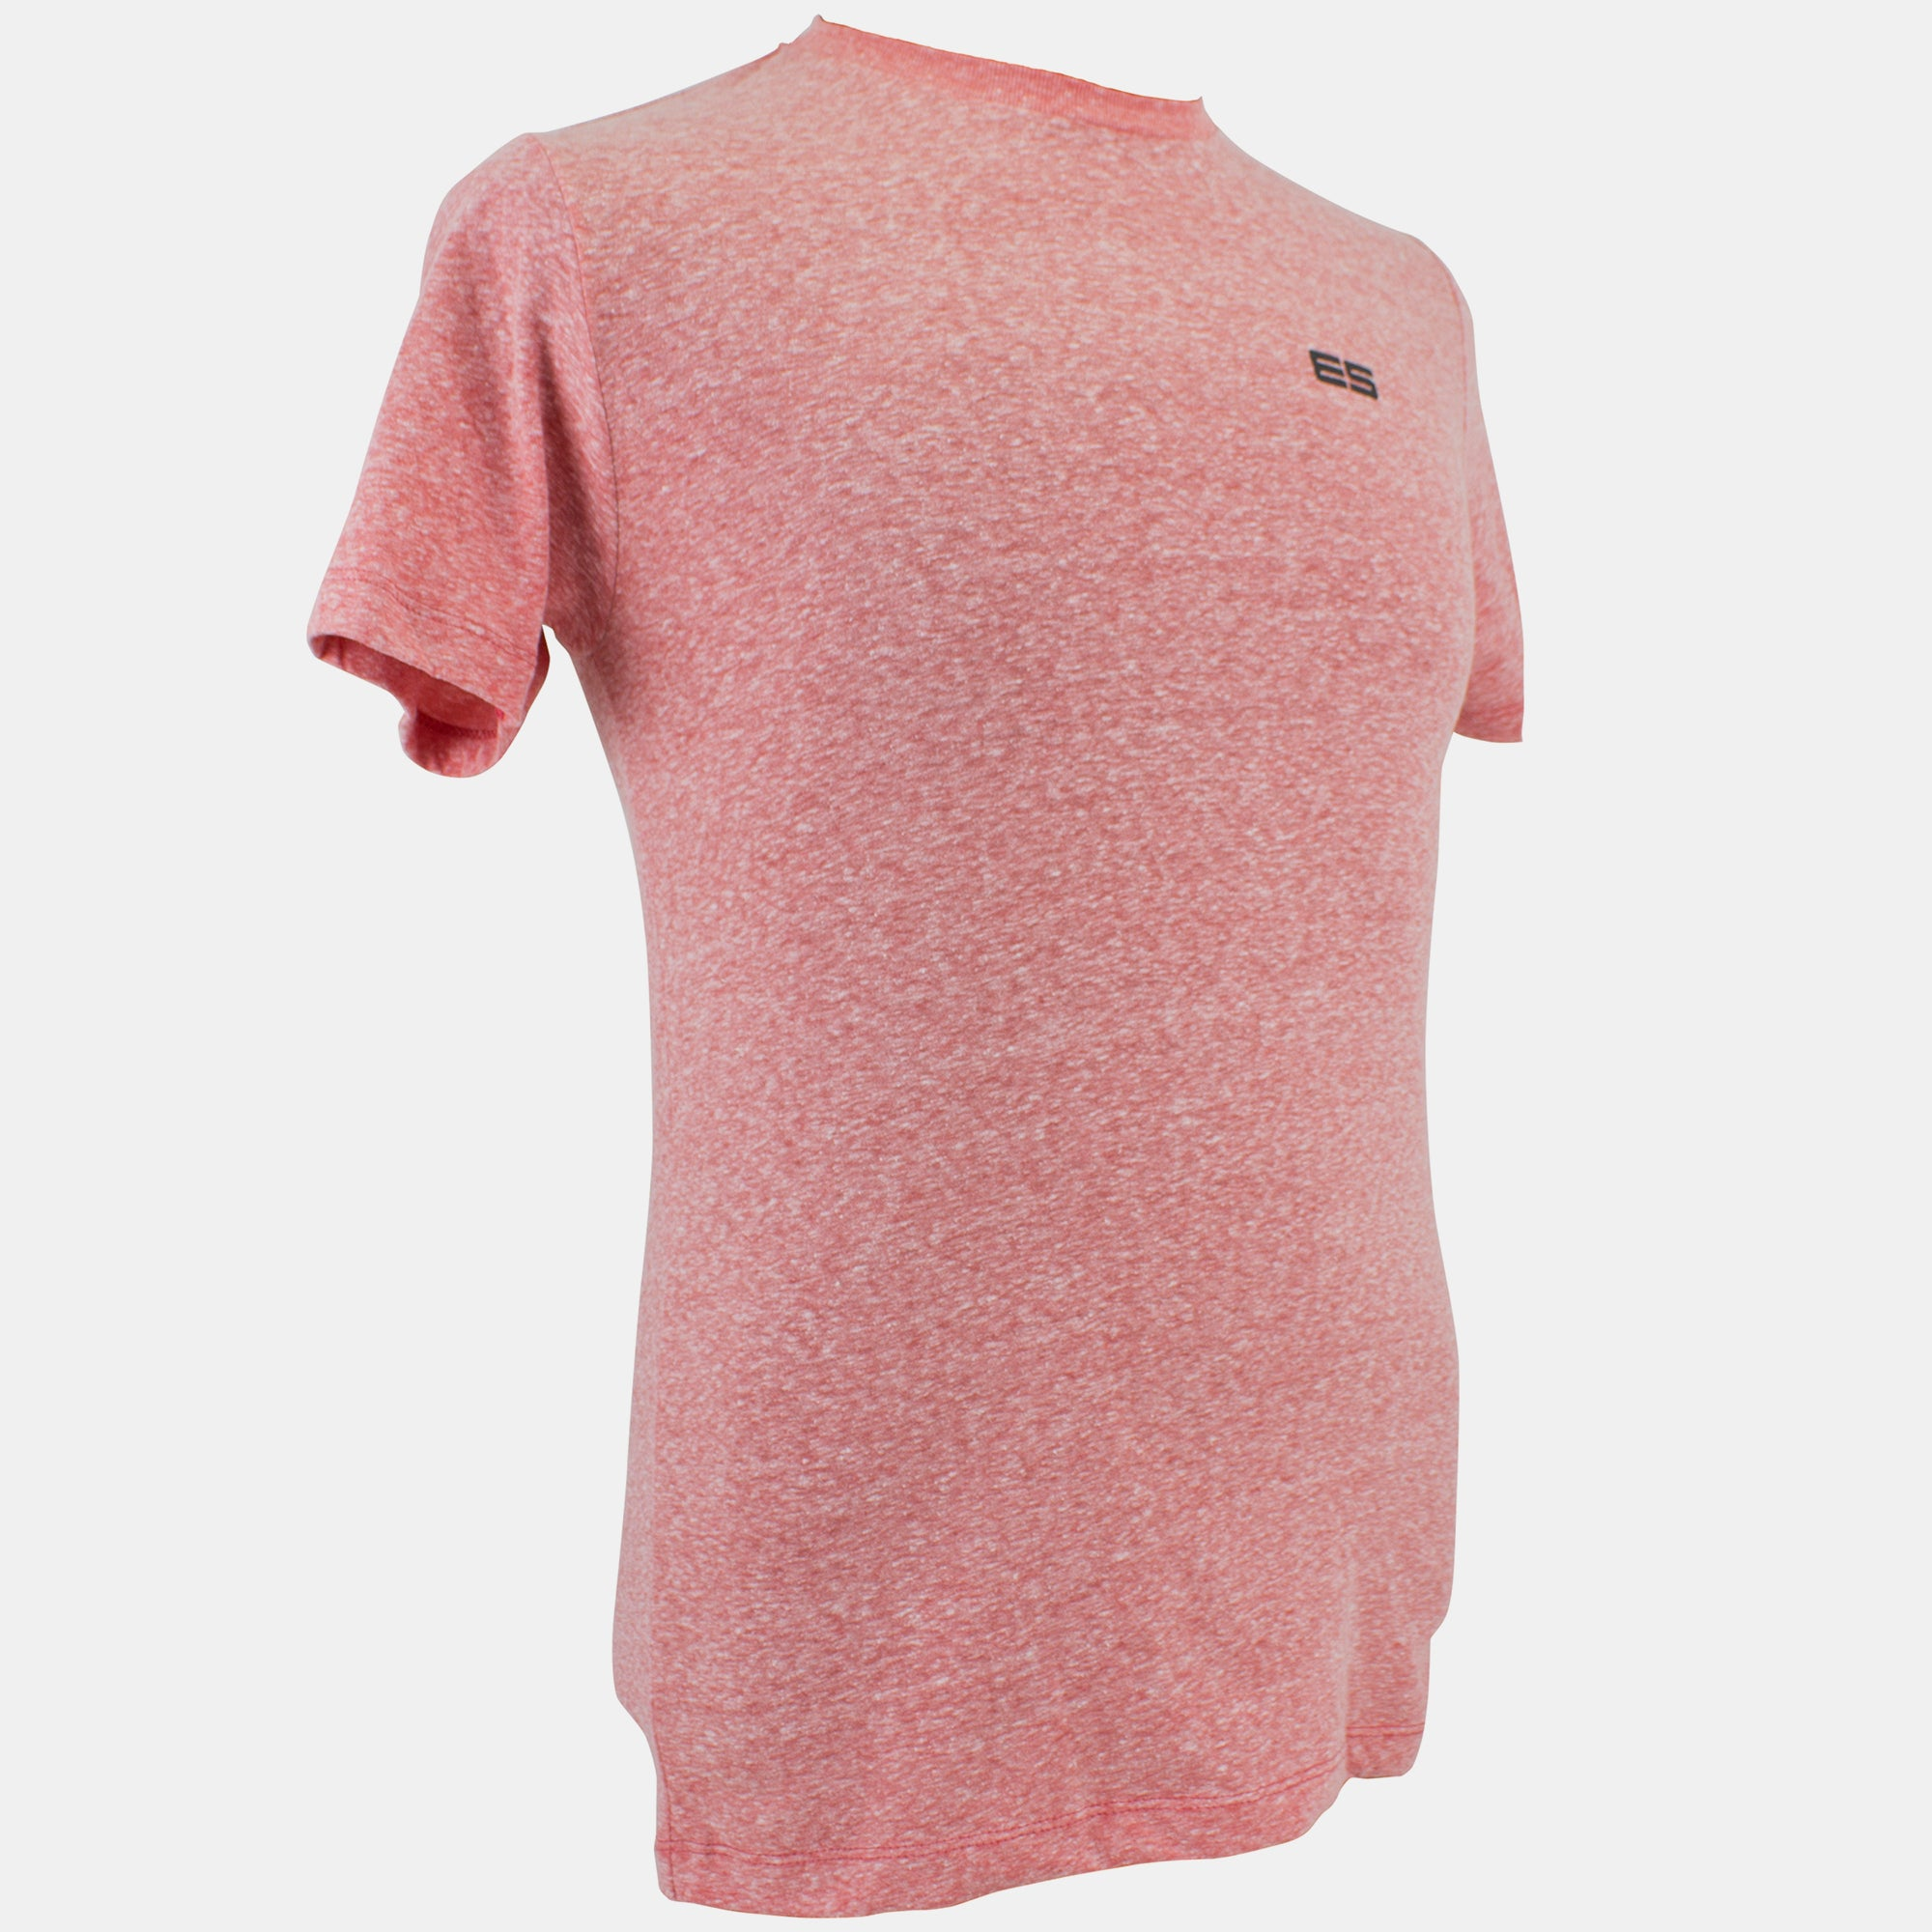 Eastsport Heather Tee